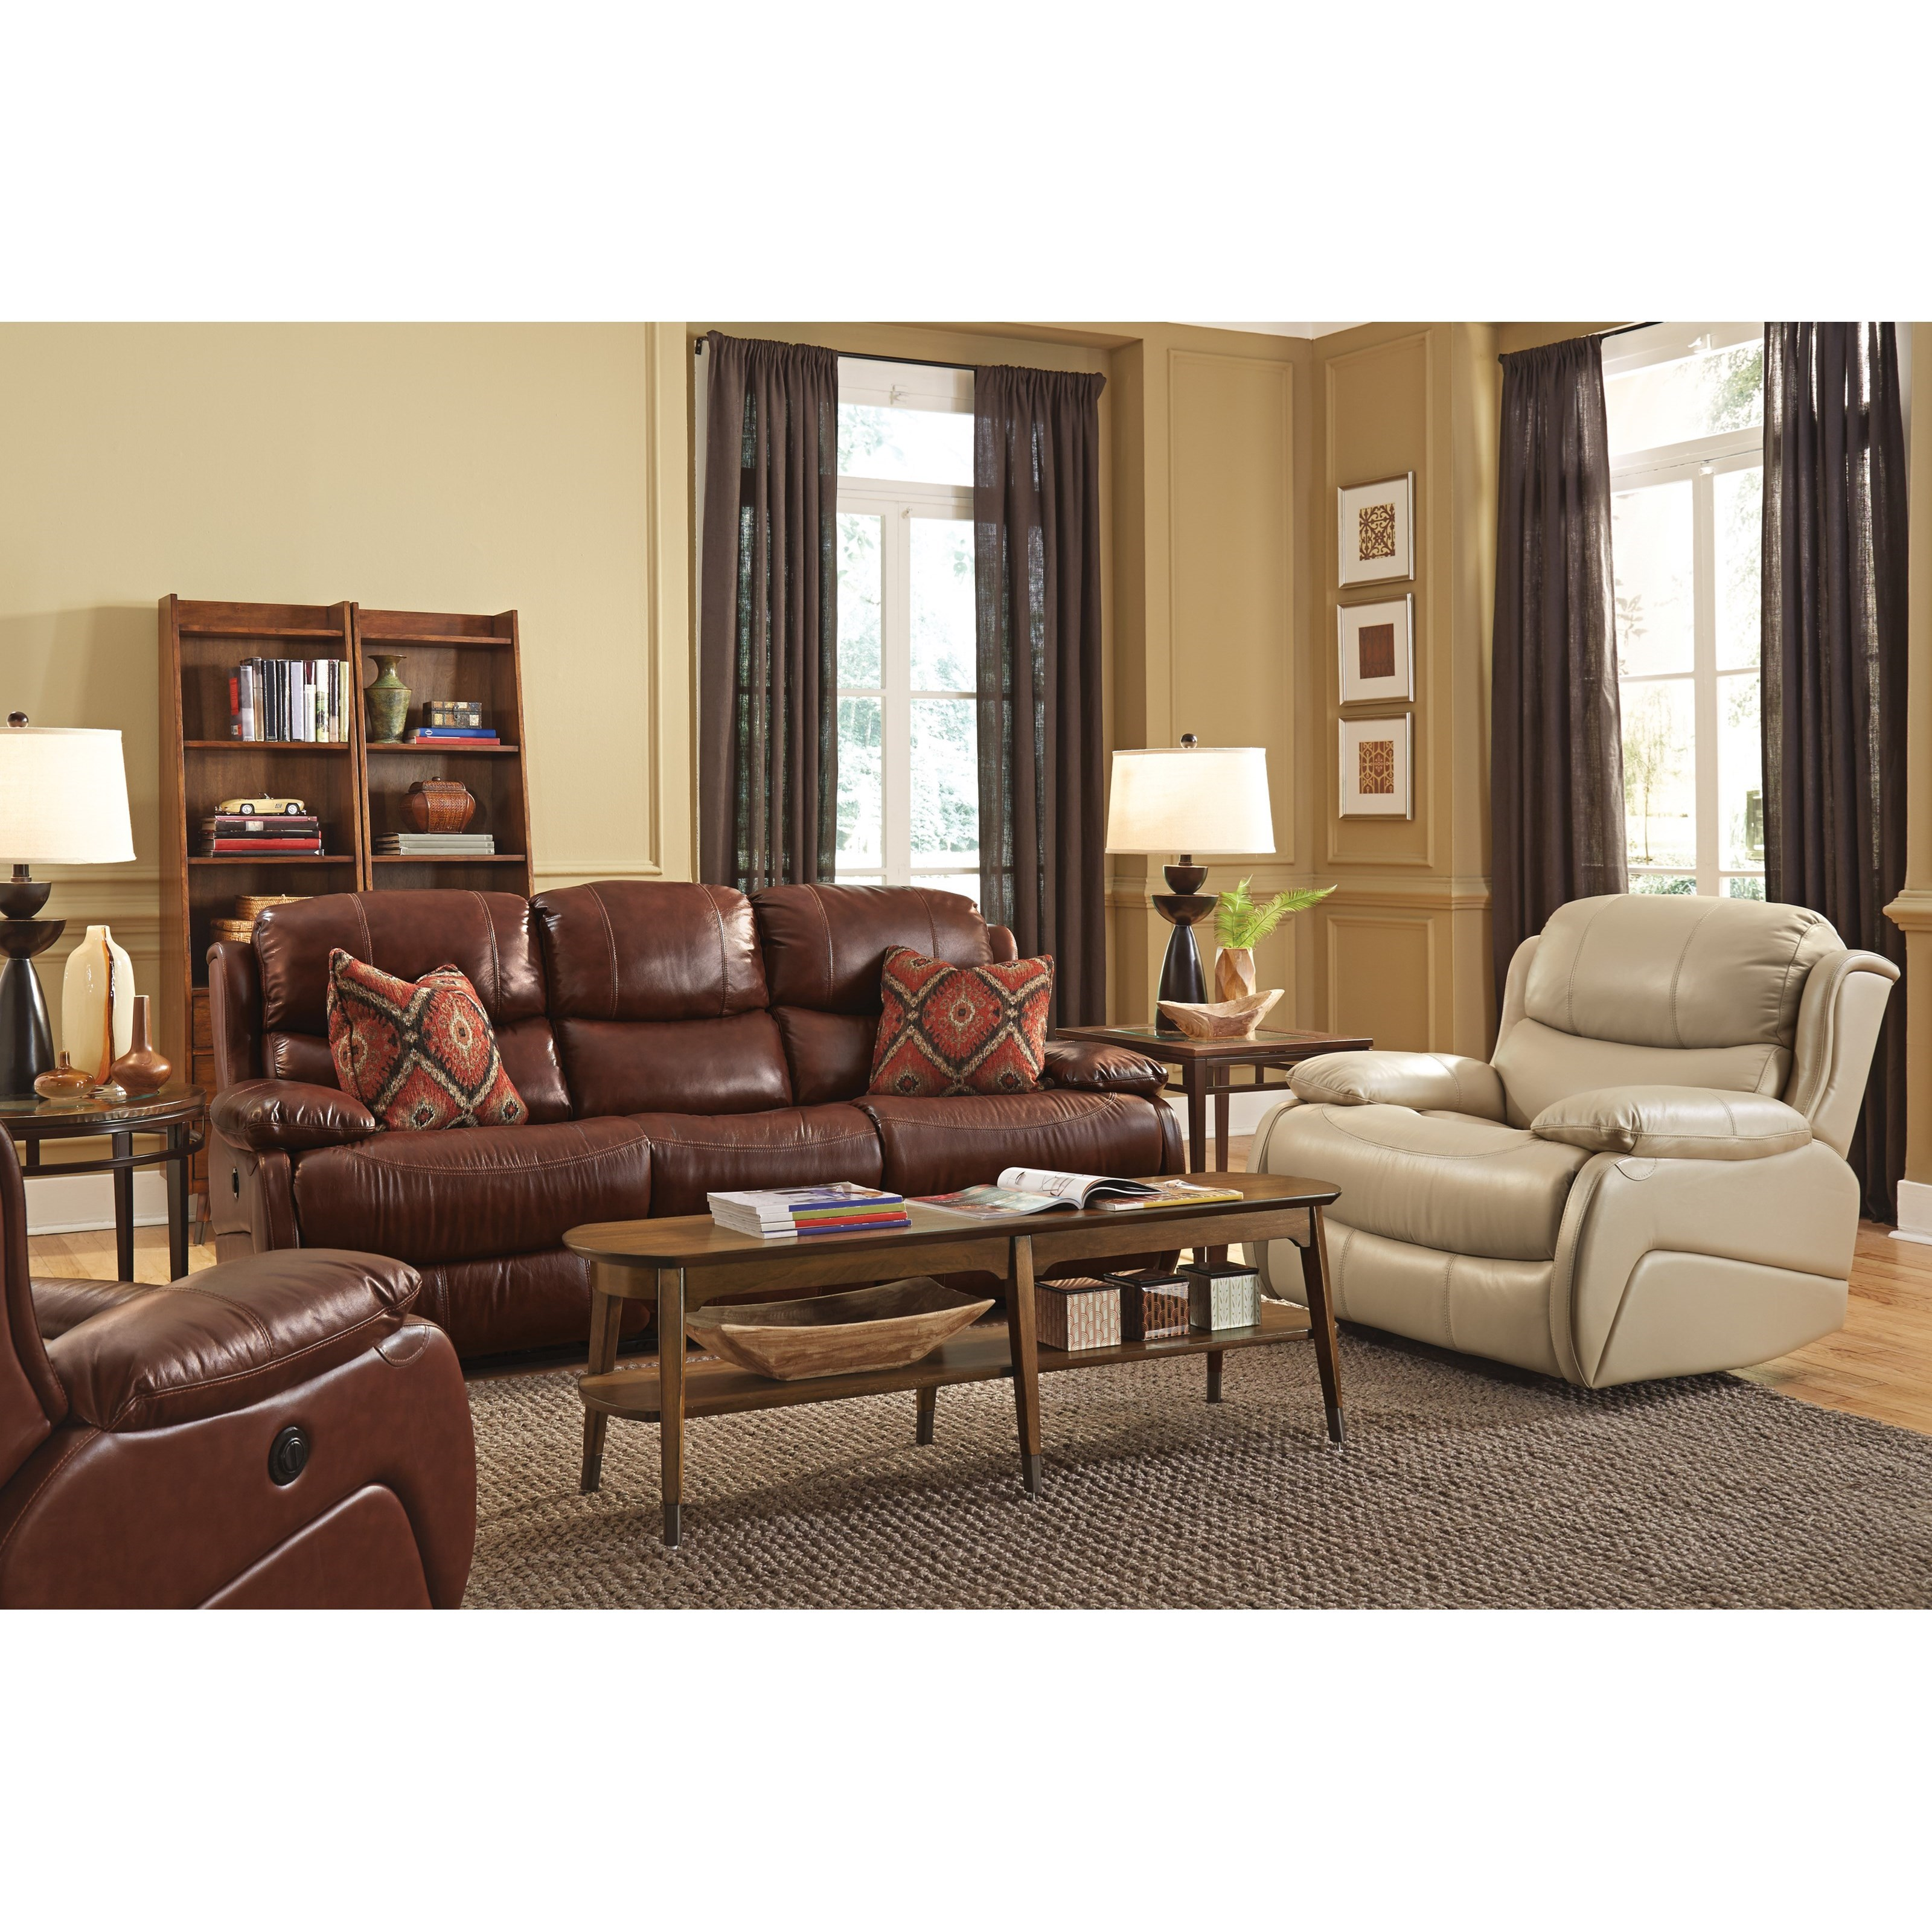 Flexsteel Latitudes - Amsterdam Power Living Room Group - Item Number: 1677 Living Room Group 2